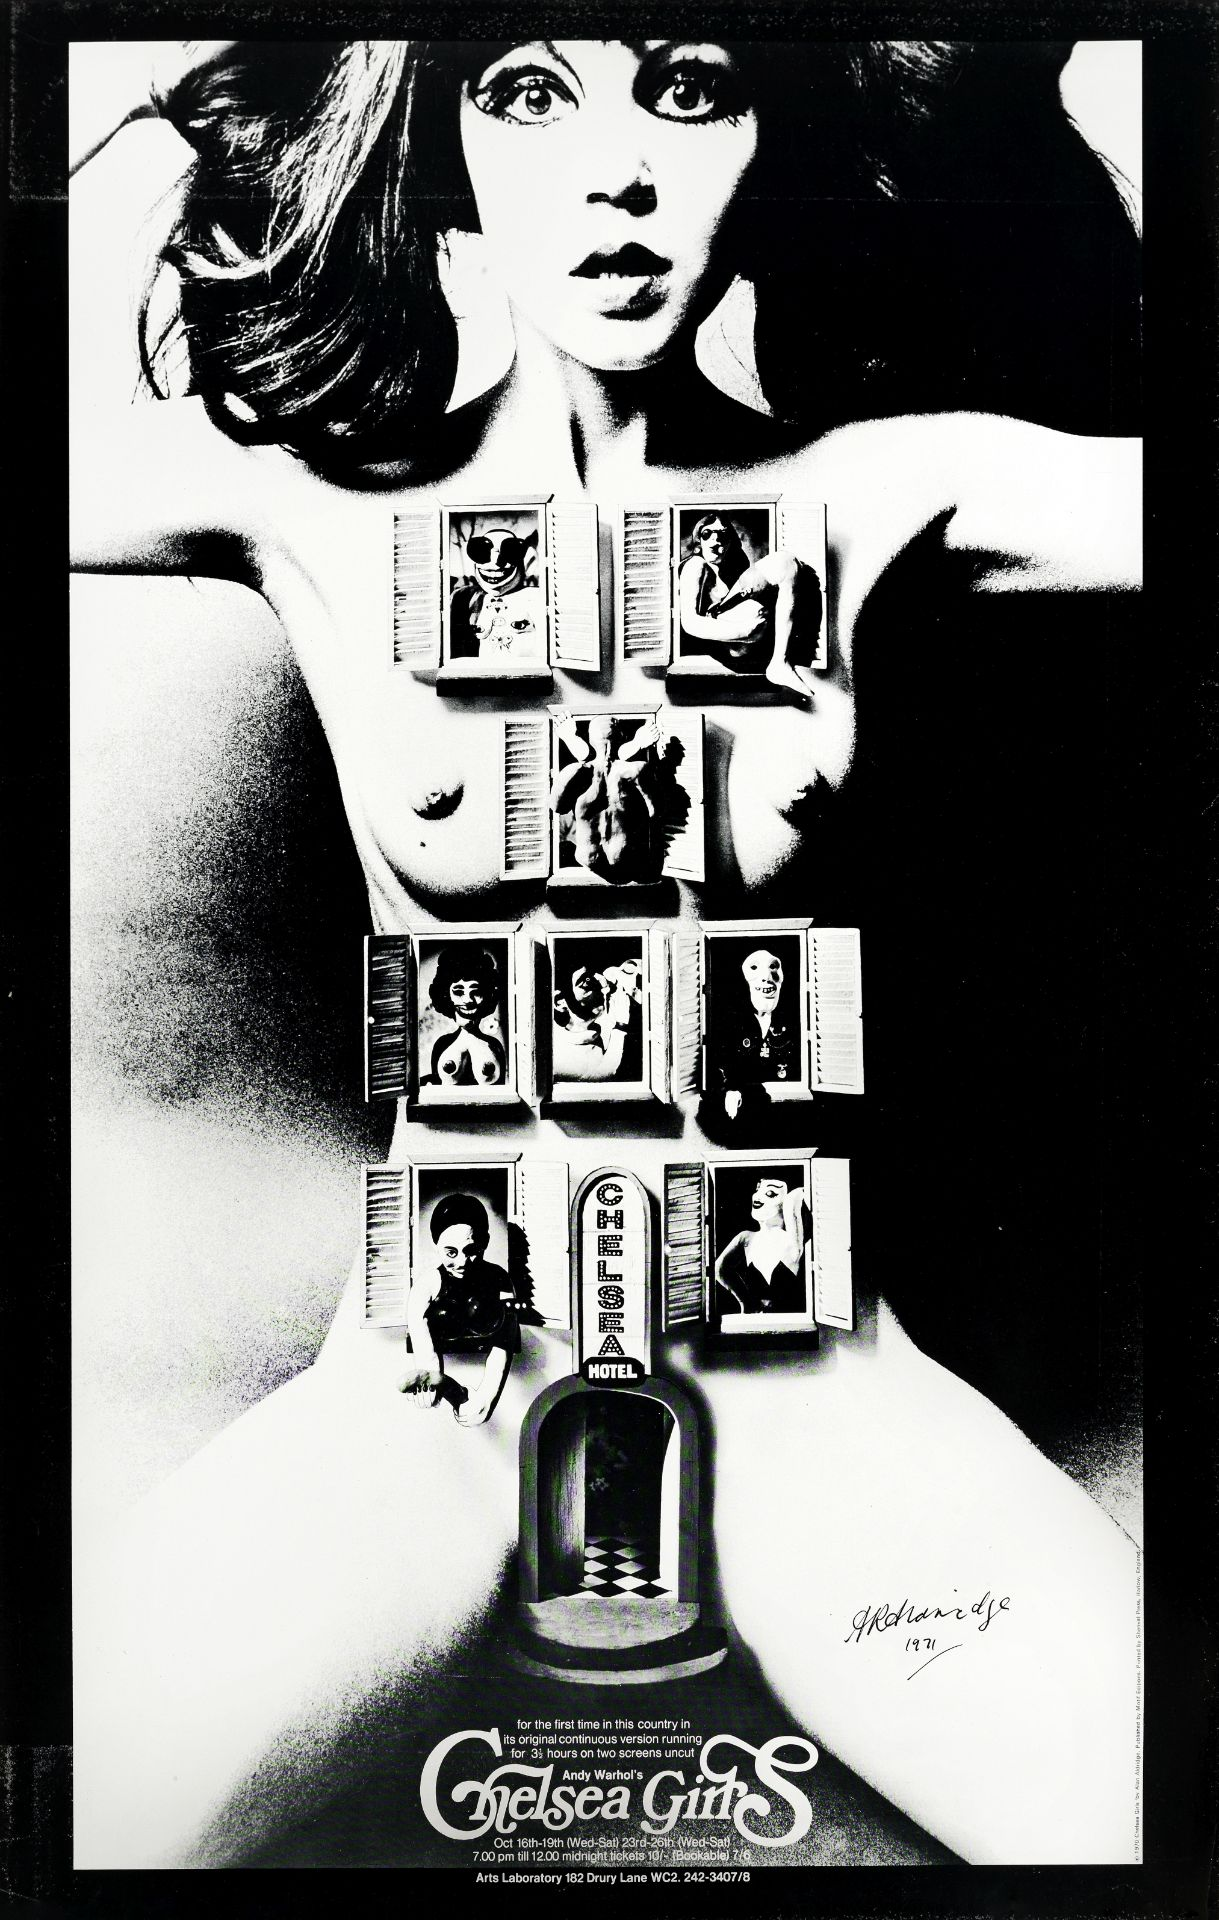 Chelsea Girls, Andy Warhol Film, 1966,